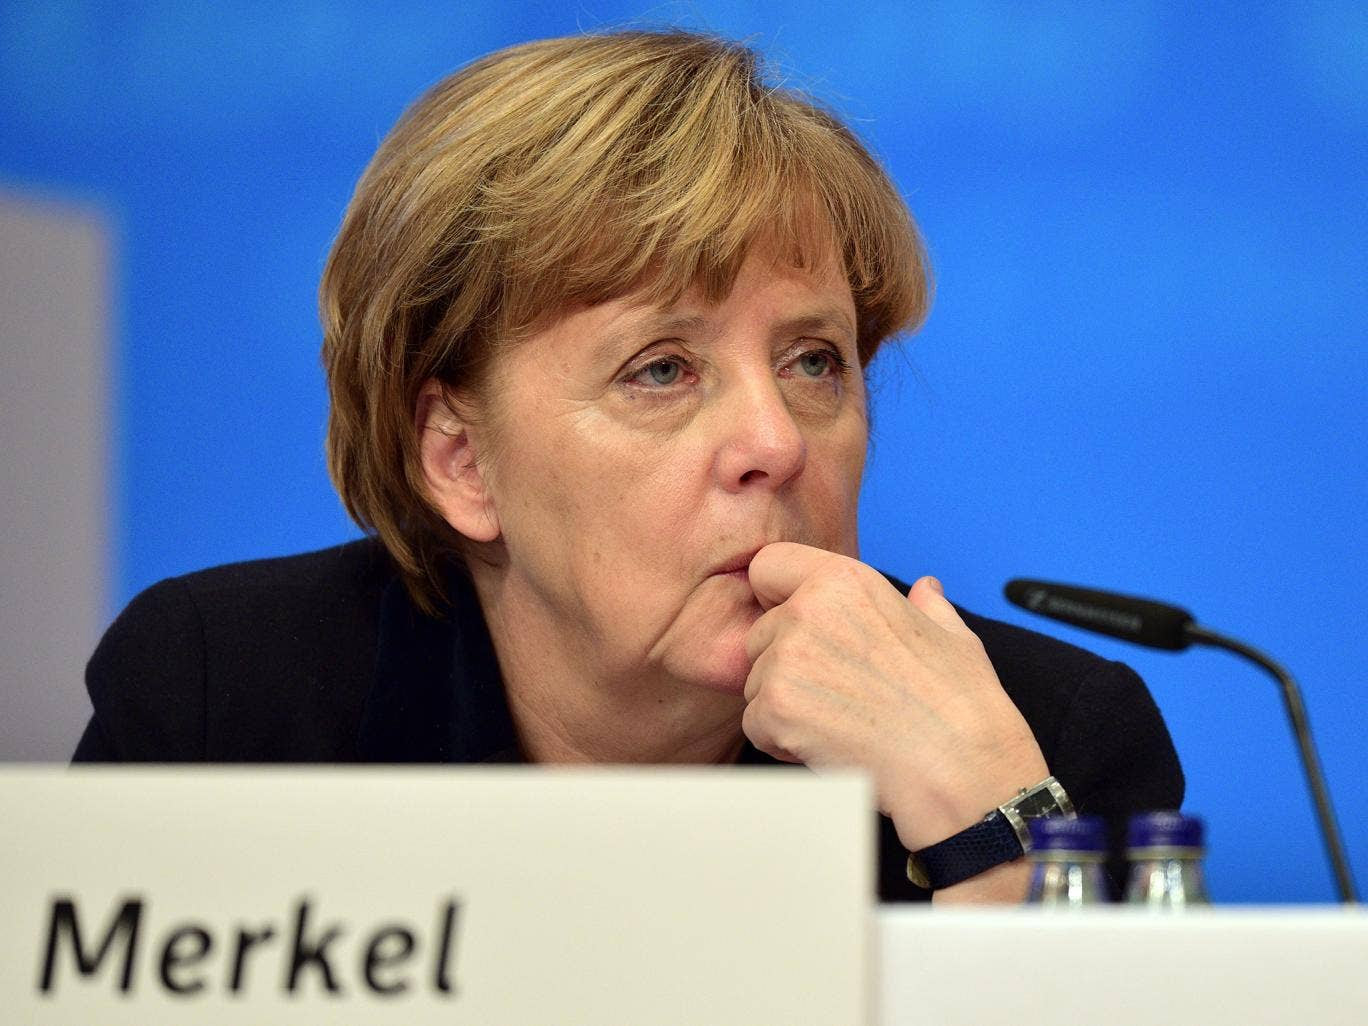 German Chancellor Angela Merkel's refugee policy has attracted praise from all over the world